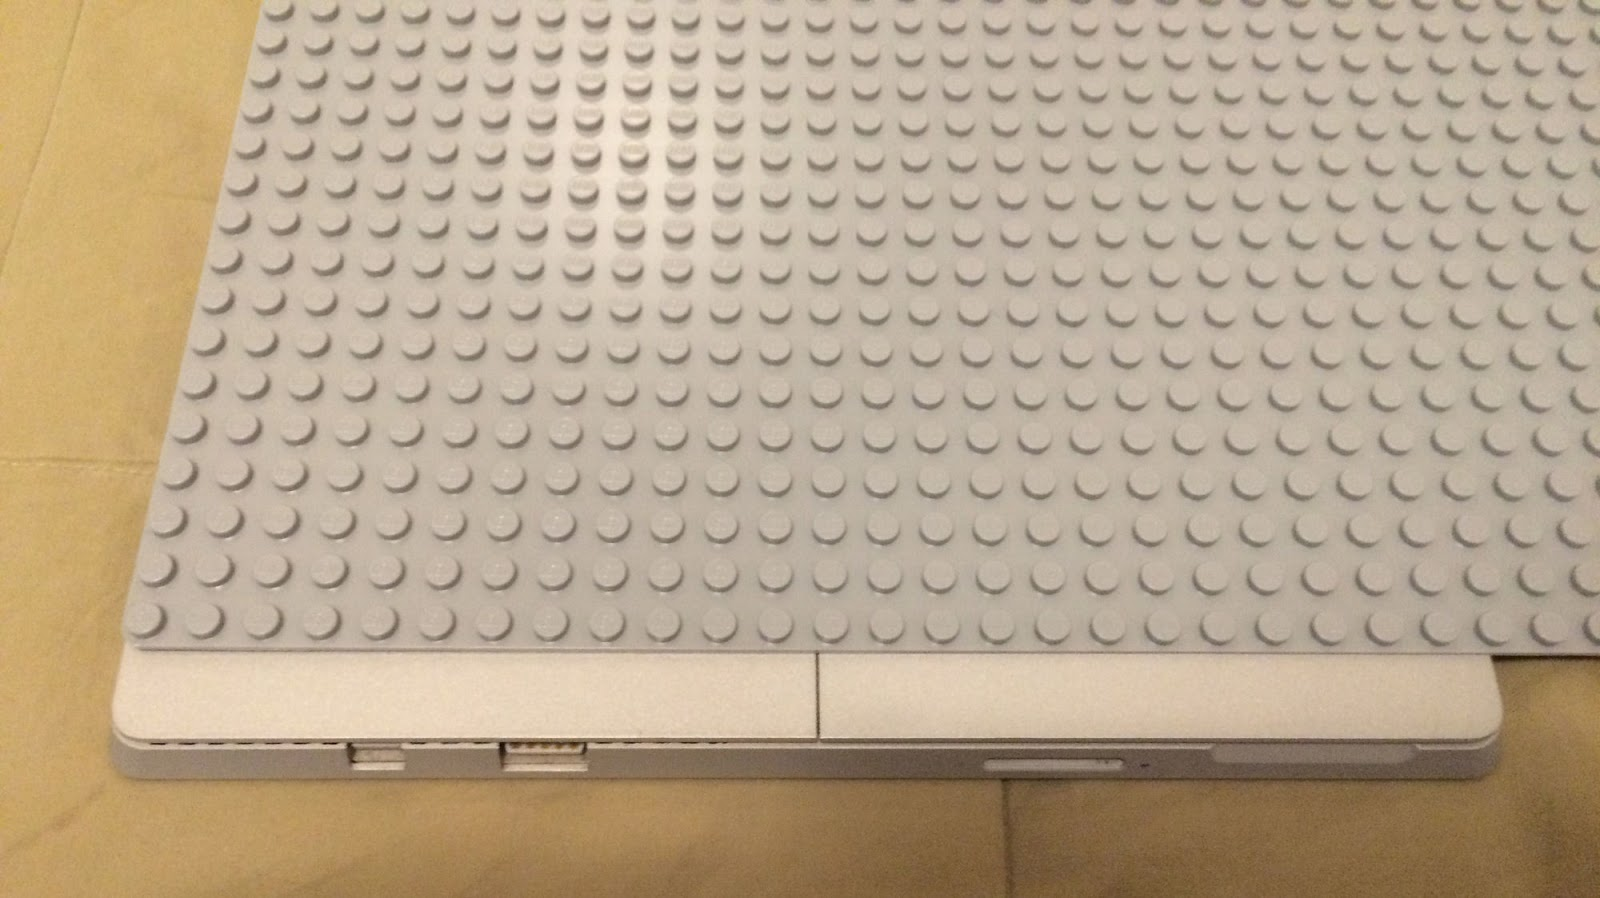 #2. Luckily, the color of the LEGO matches the color of the tablet quite well. - He Glued LEGO To His Tablet. The Reason Why… I Can't Wait To Try.